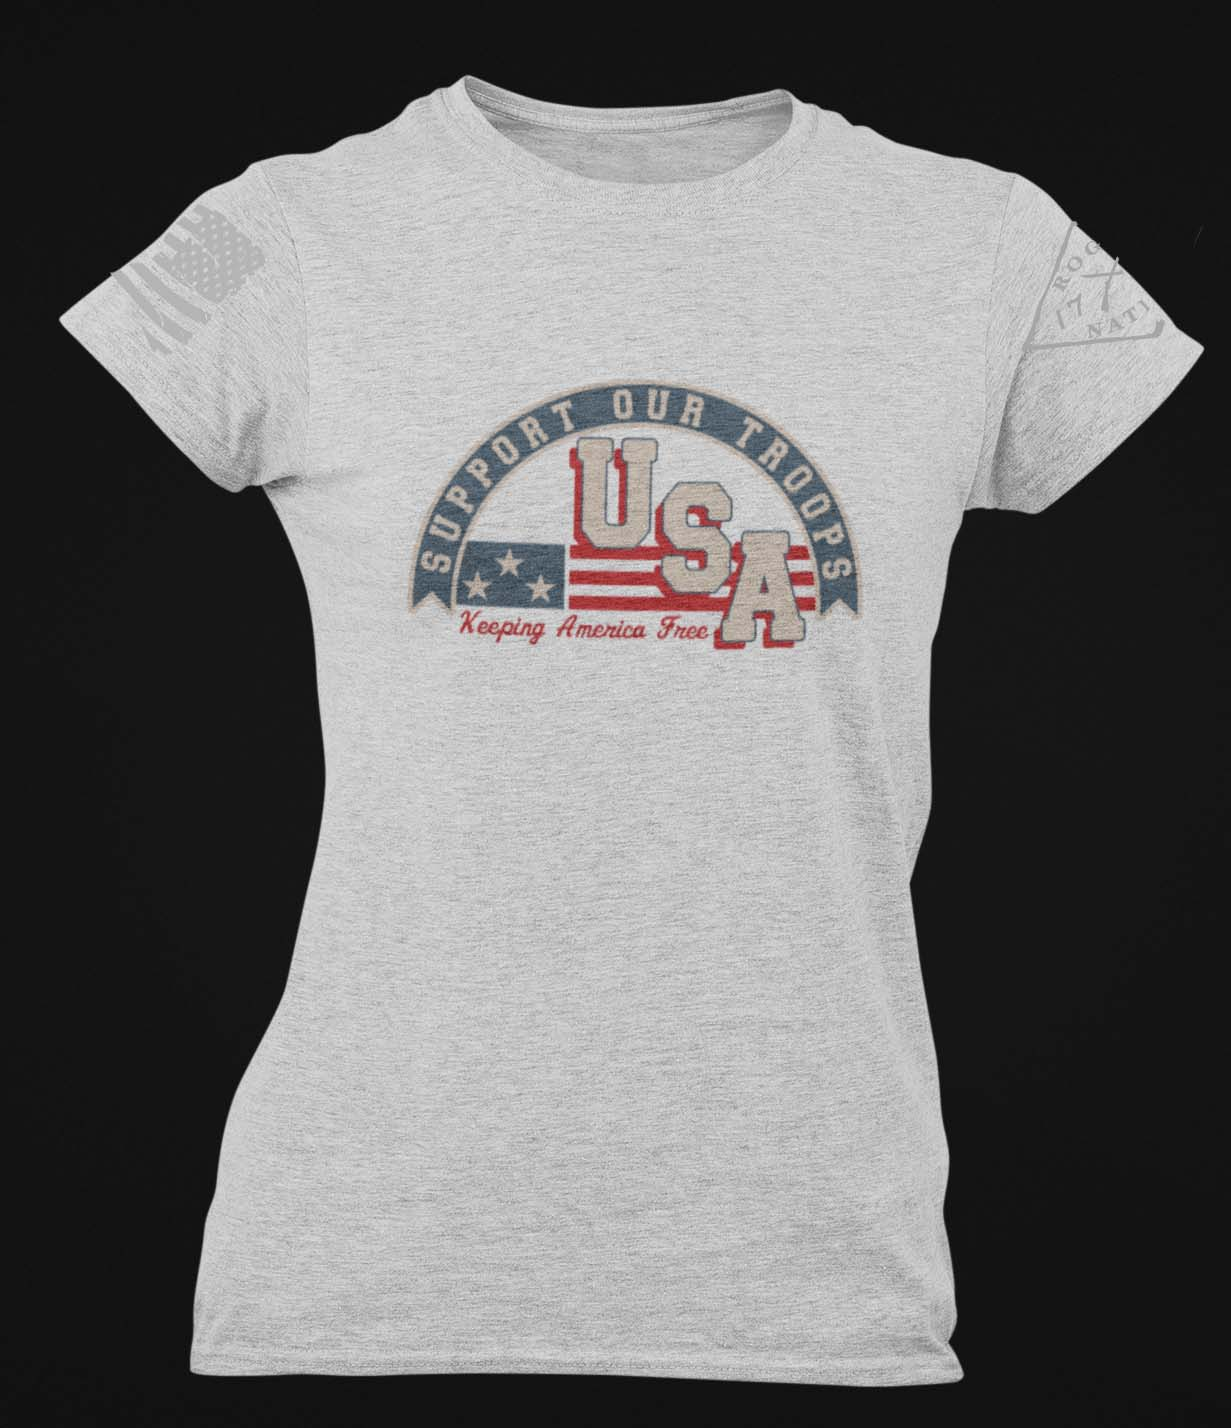 Support Our Troops on a Women's Light Heather Grey T-Shirt